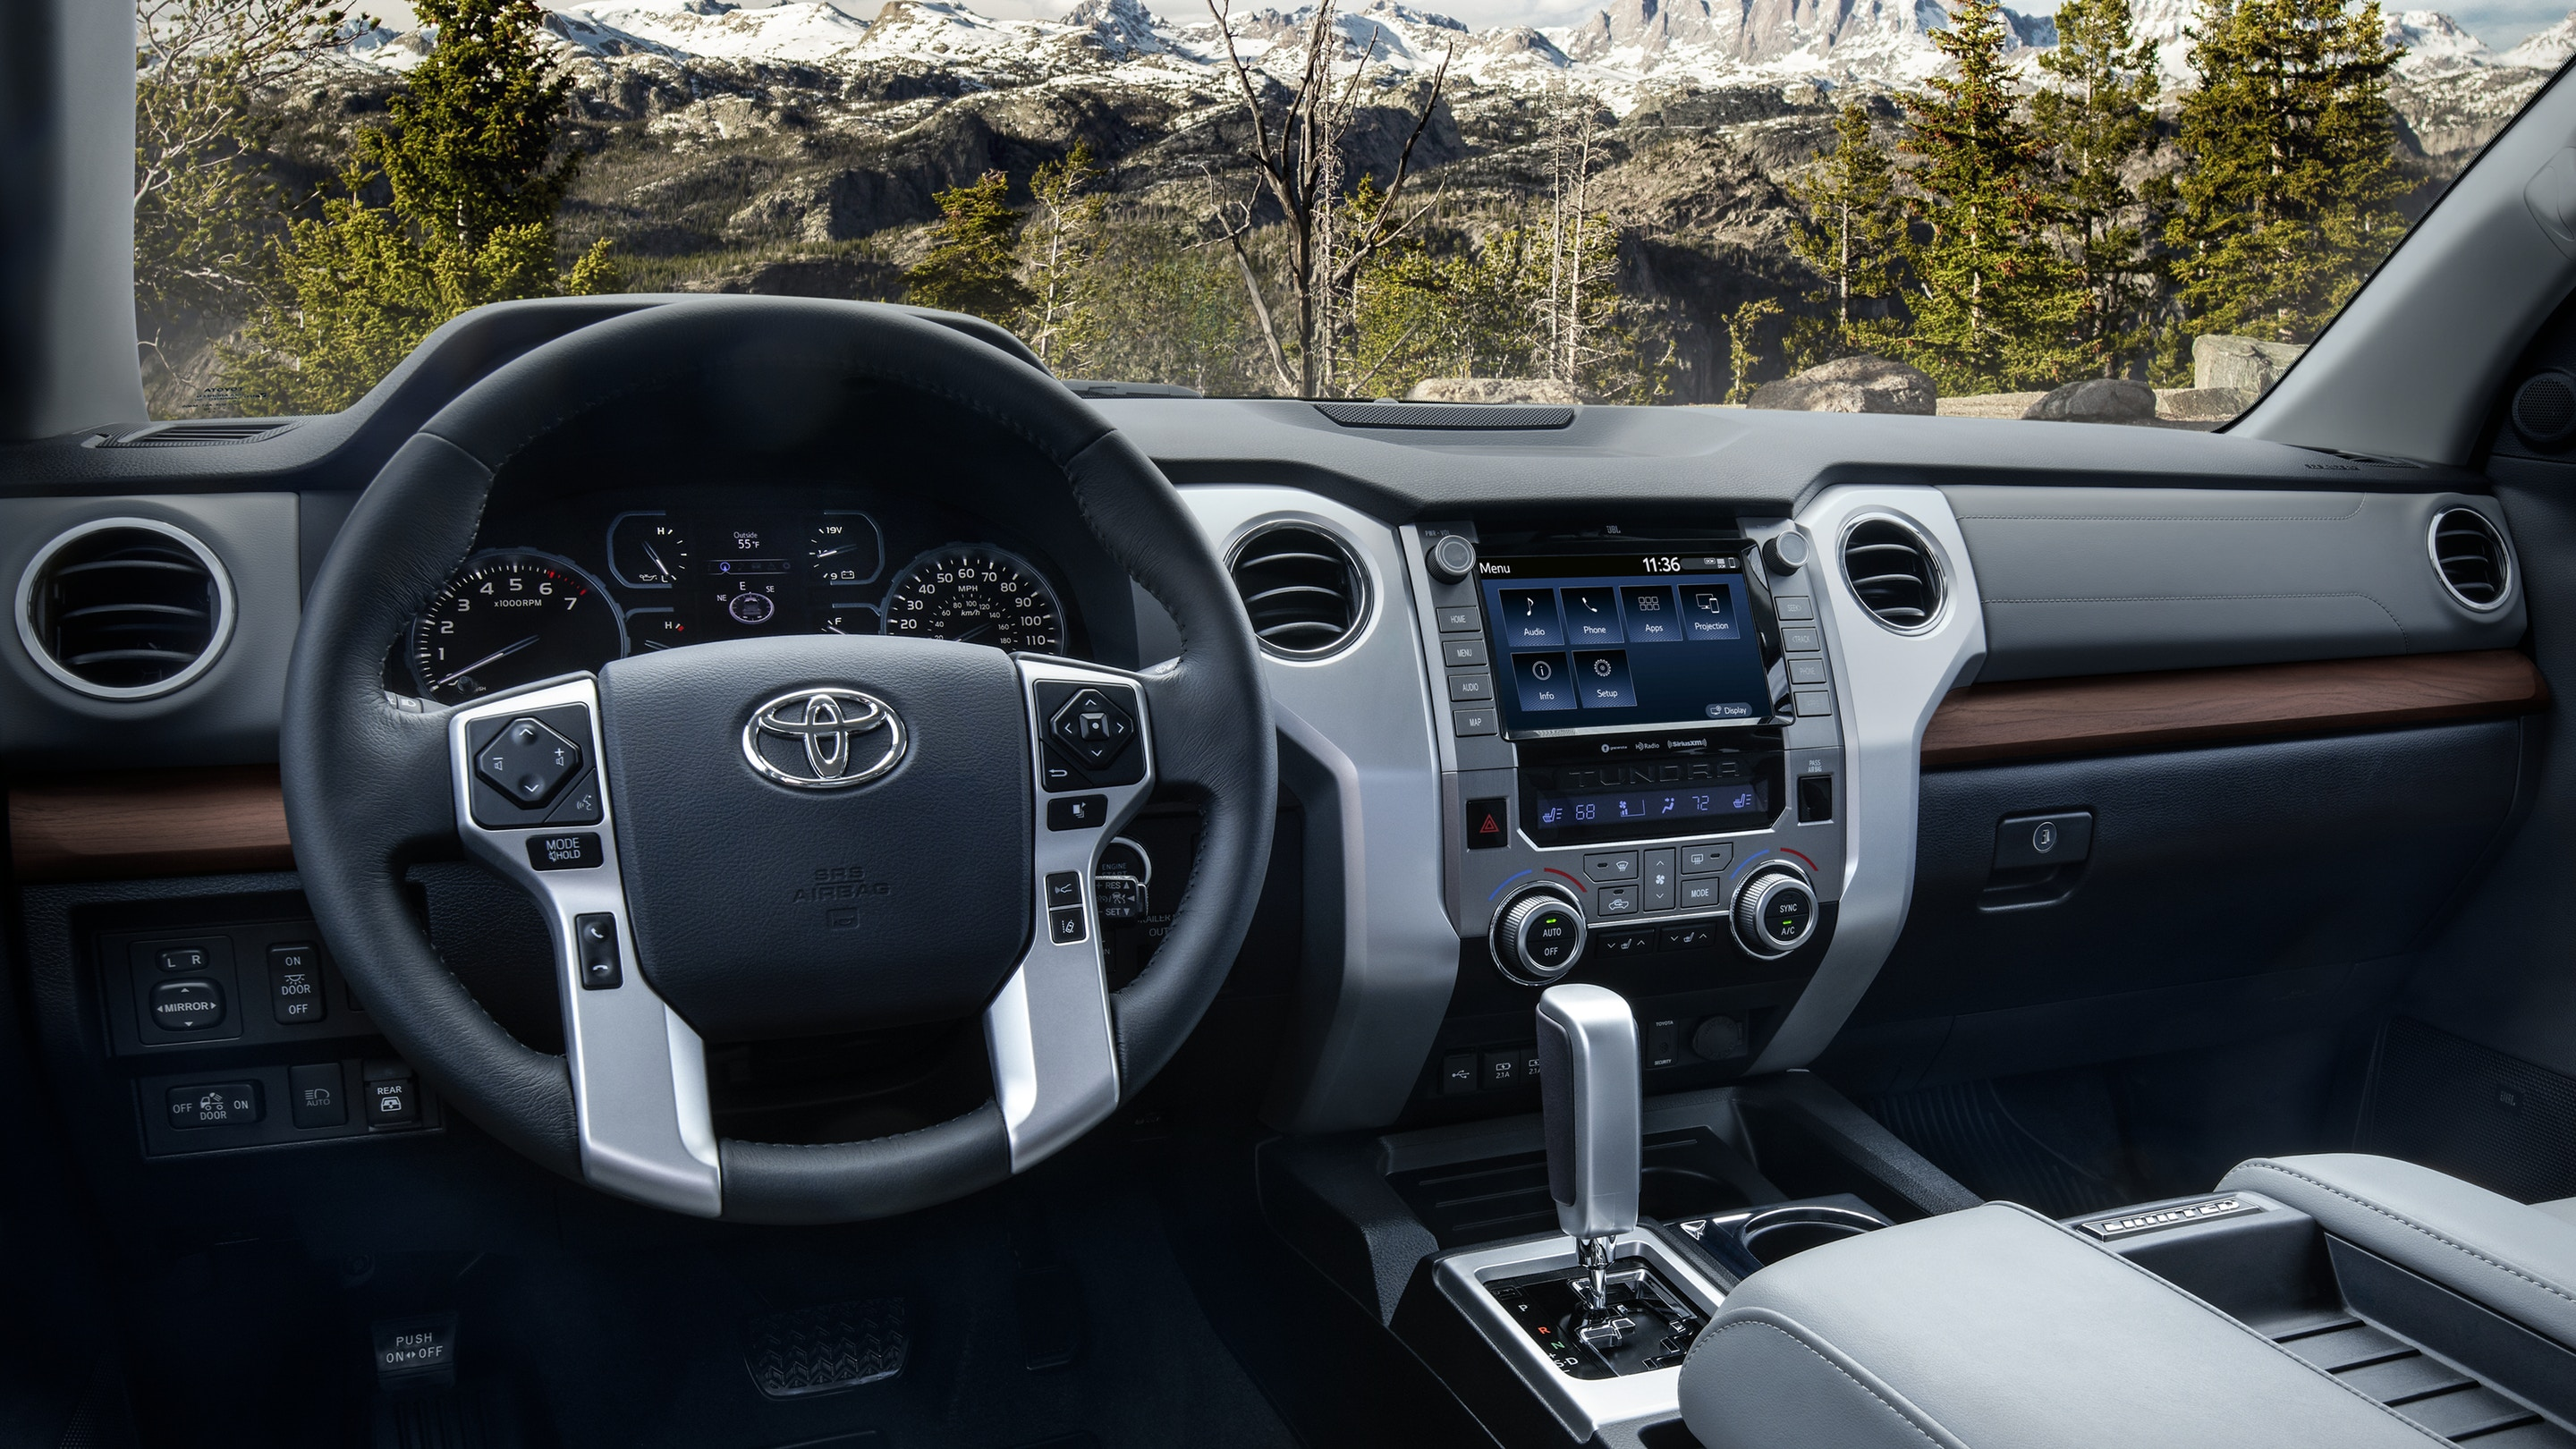 Steering Wheel in the 2020 Tundra